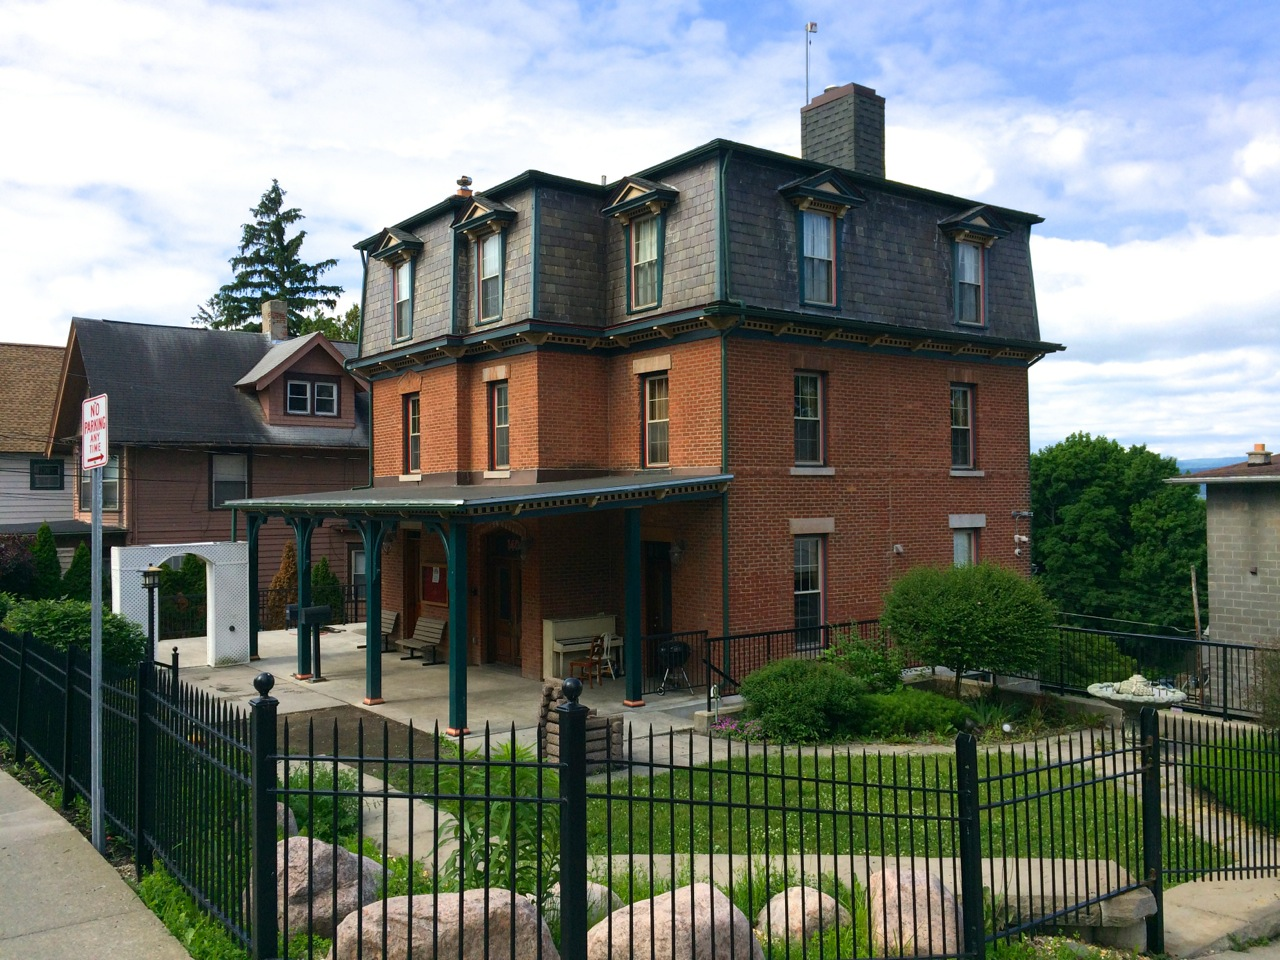 140-College-Ave-Ithaca-0615144